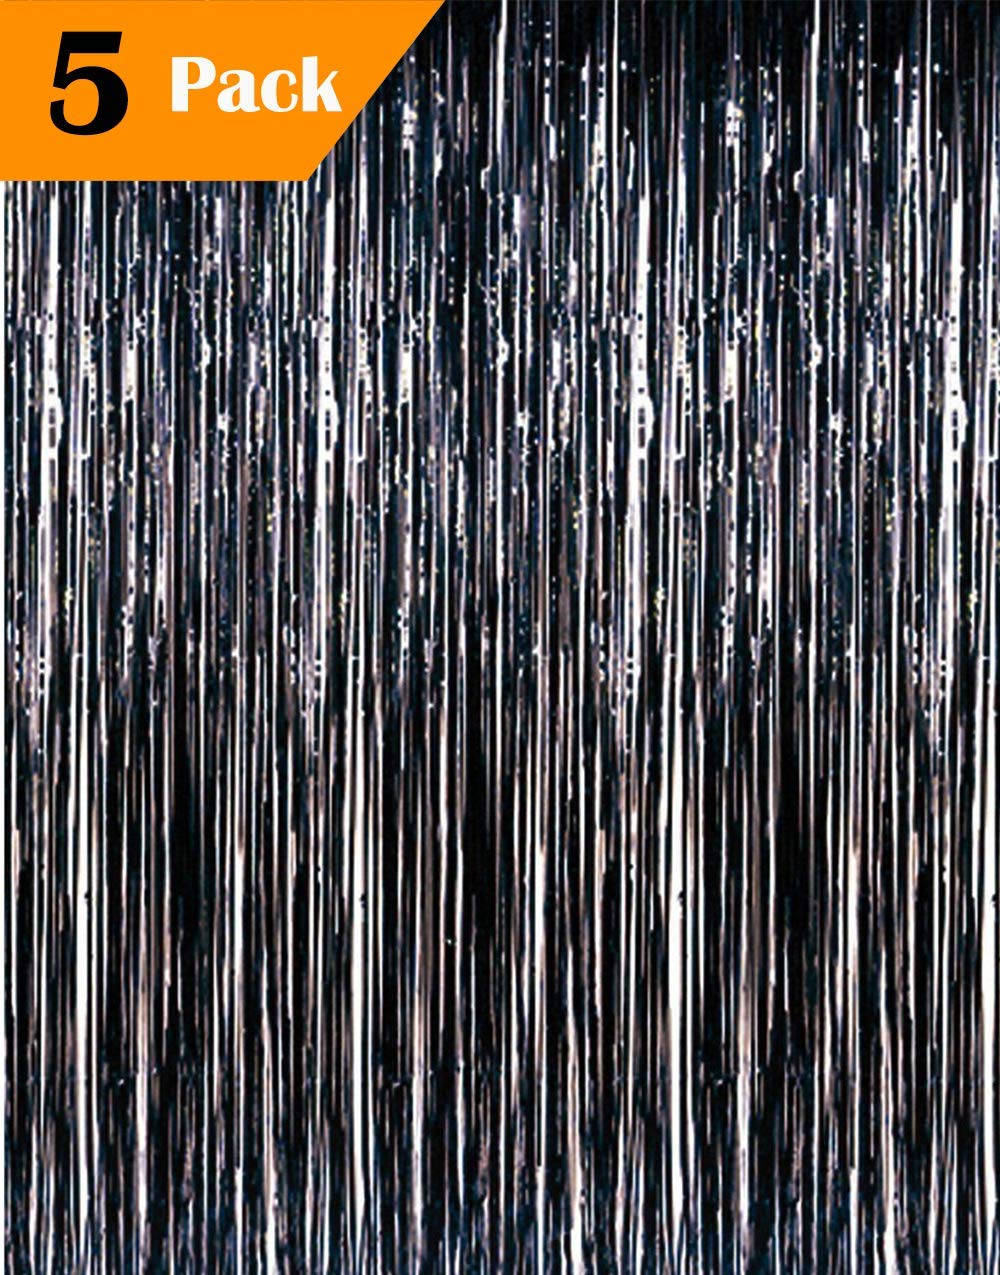 eforpretty 3.2 ft x 9.8 ft Metallic Tinsel Foil Fringe Curtains for Party Photo Backdrop Wedding Decor (5 Pcs Black)